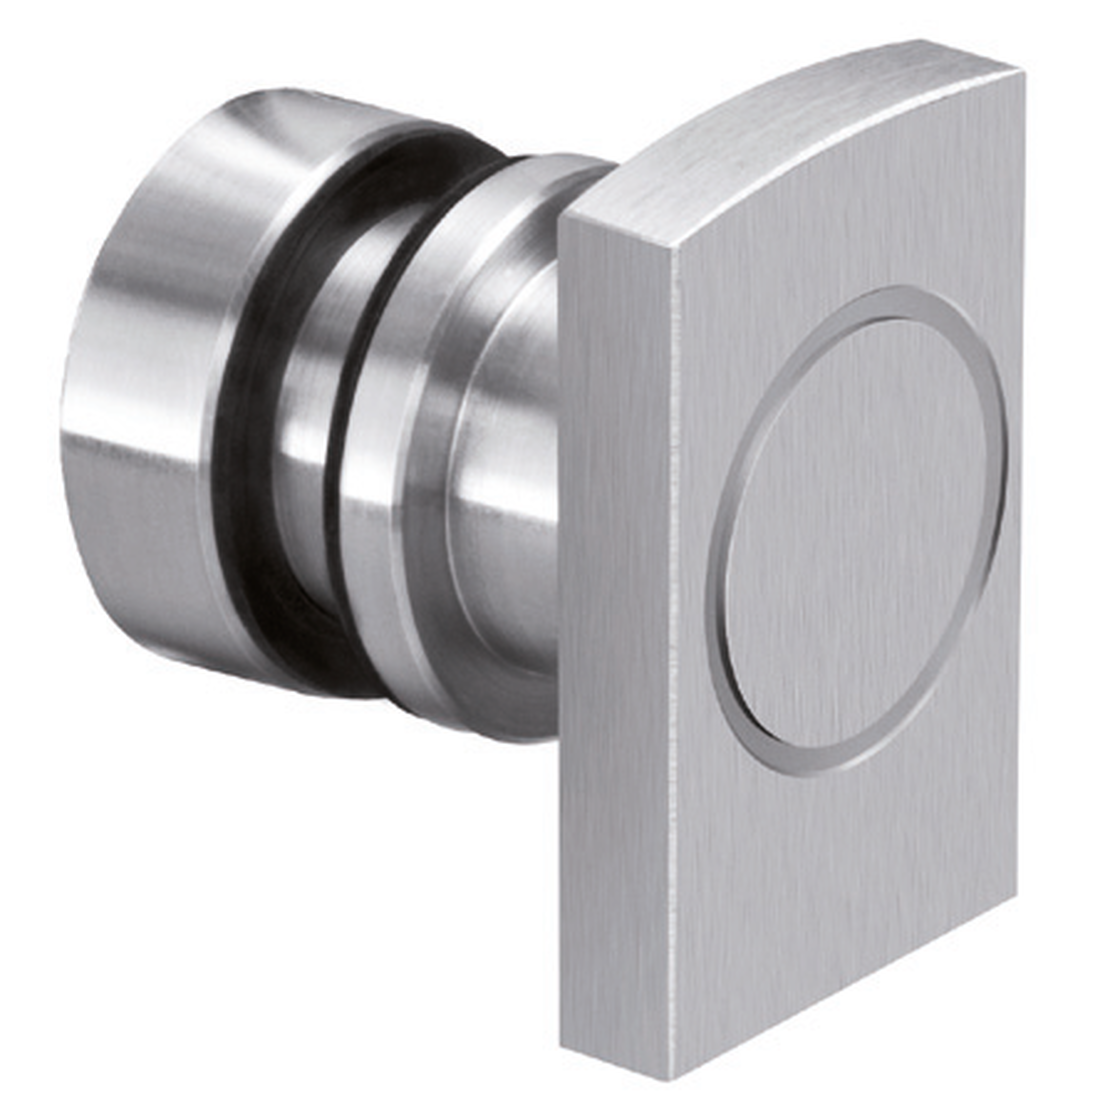 ZOSA SHOWER KNOB, PAIR